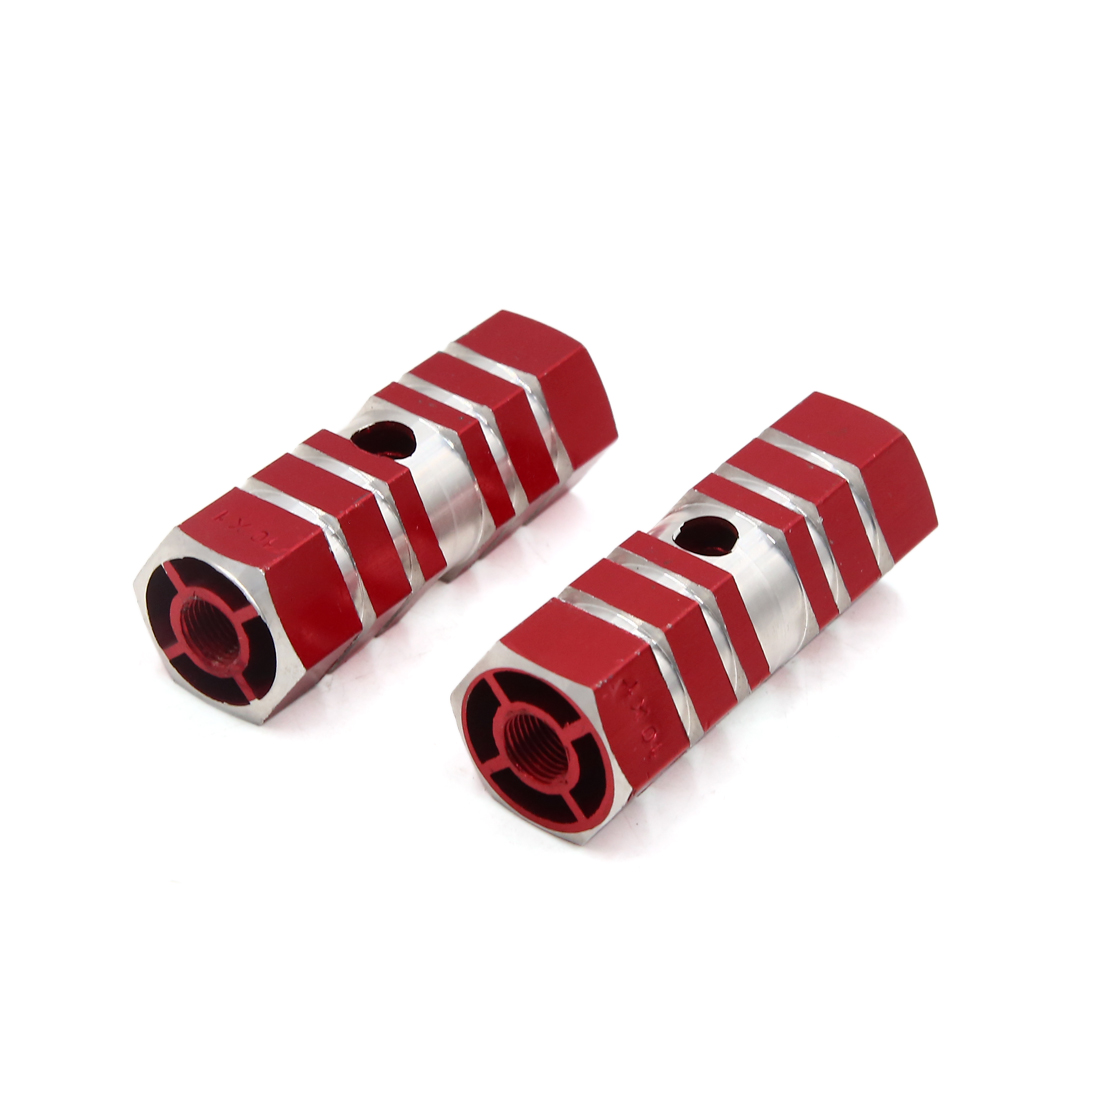 2Pcs 9mm Thread Dia Six Axle Bicycle Cycling Rear Stunt Foot Pegs Pedals Red